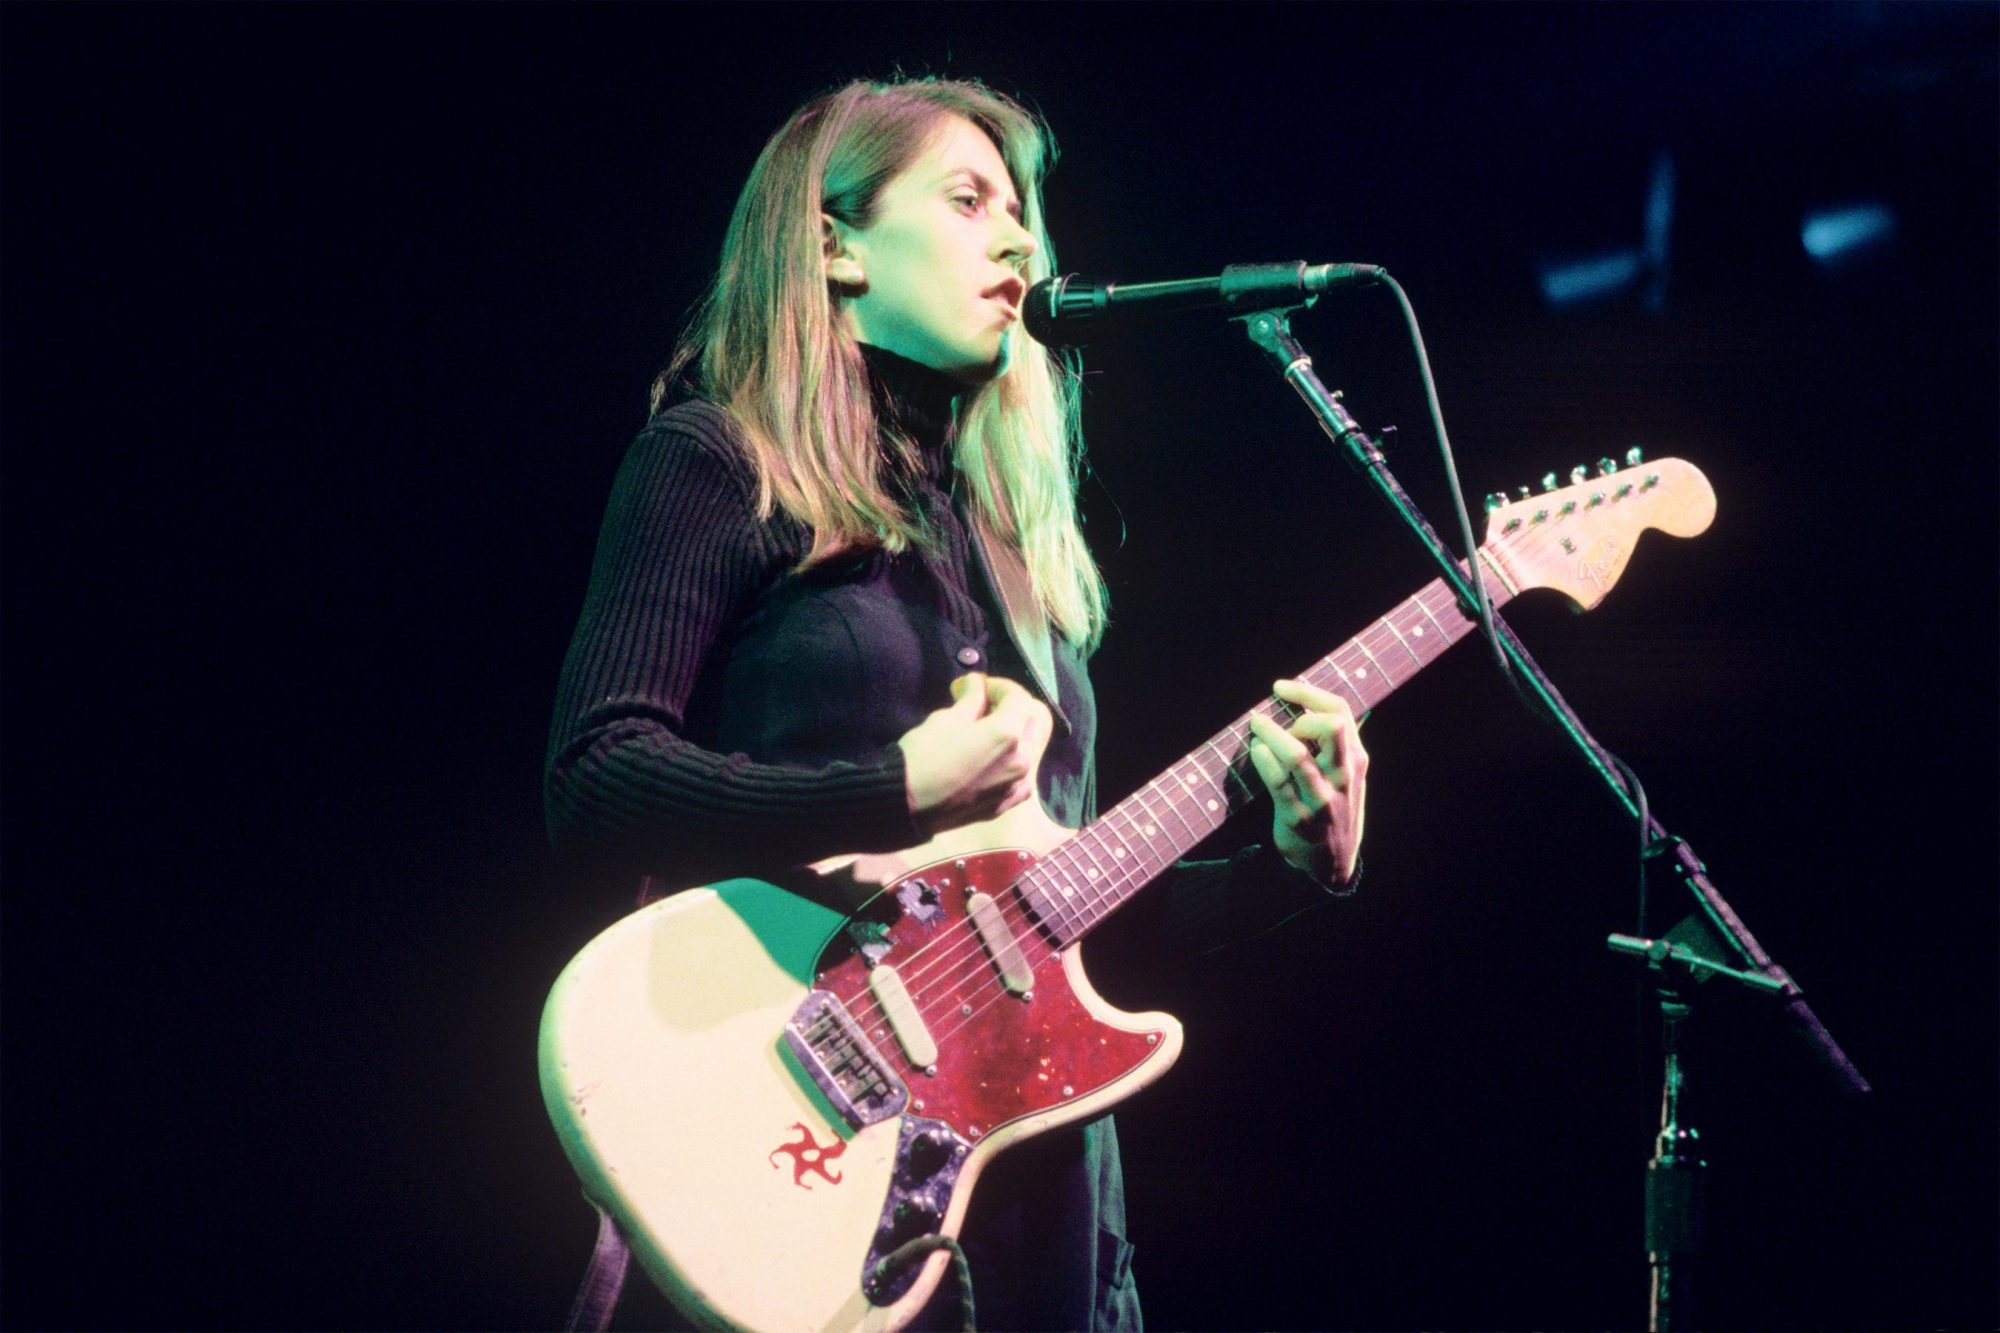 (MANDATORY CREDIT Ebet Roberts/Getty Images) Liz Phair performing at The Academy in New York City on April 8, 1994. (Photo by Ebet Roberts/Redferns)